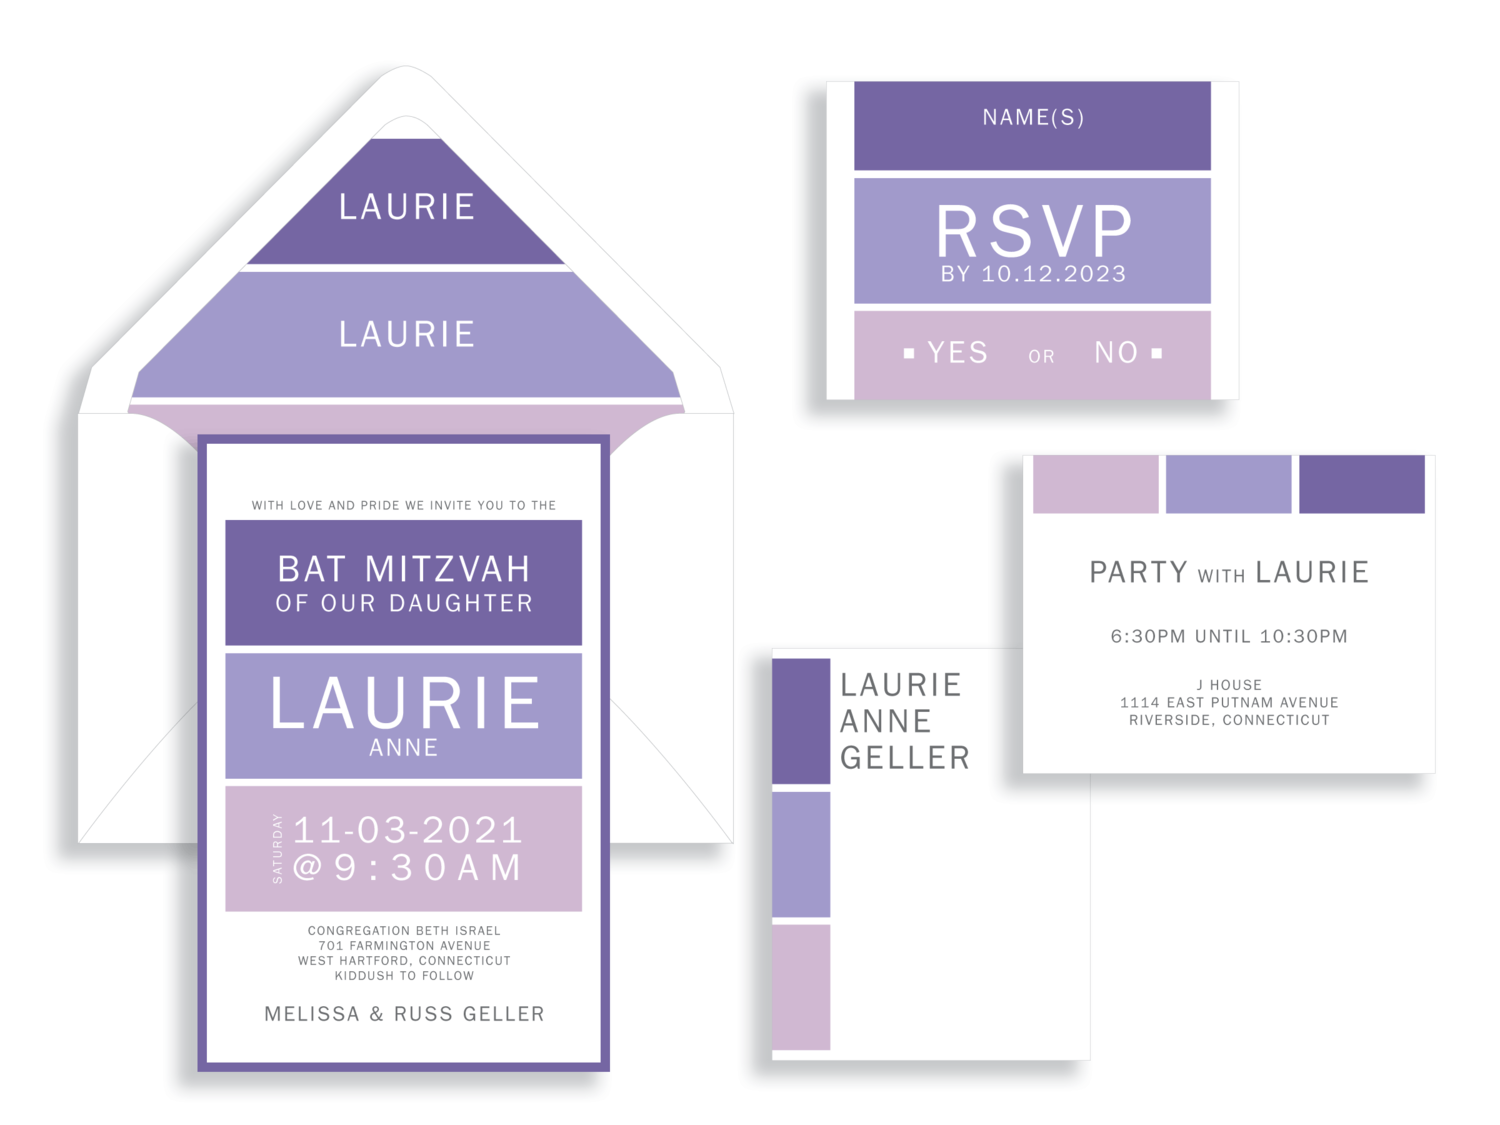 Laurie bold purple blocks bat mitzvah invitation in Fairfax Virginia from Staccato with personalized service, great selection!